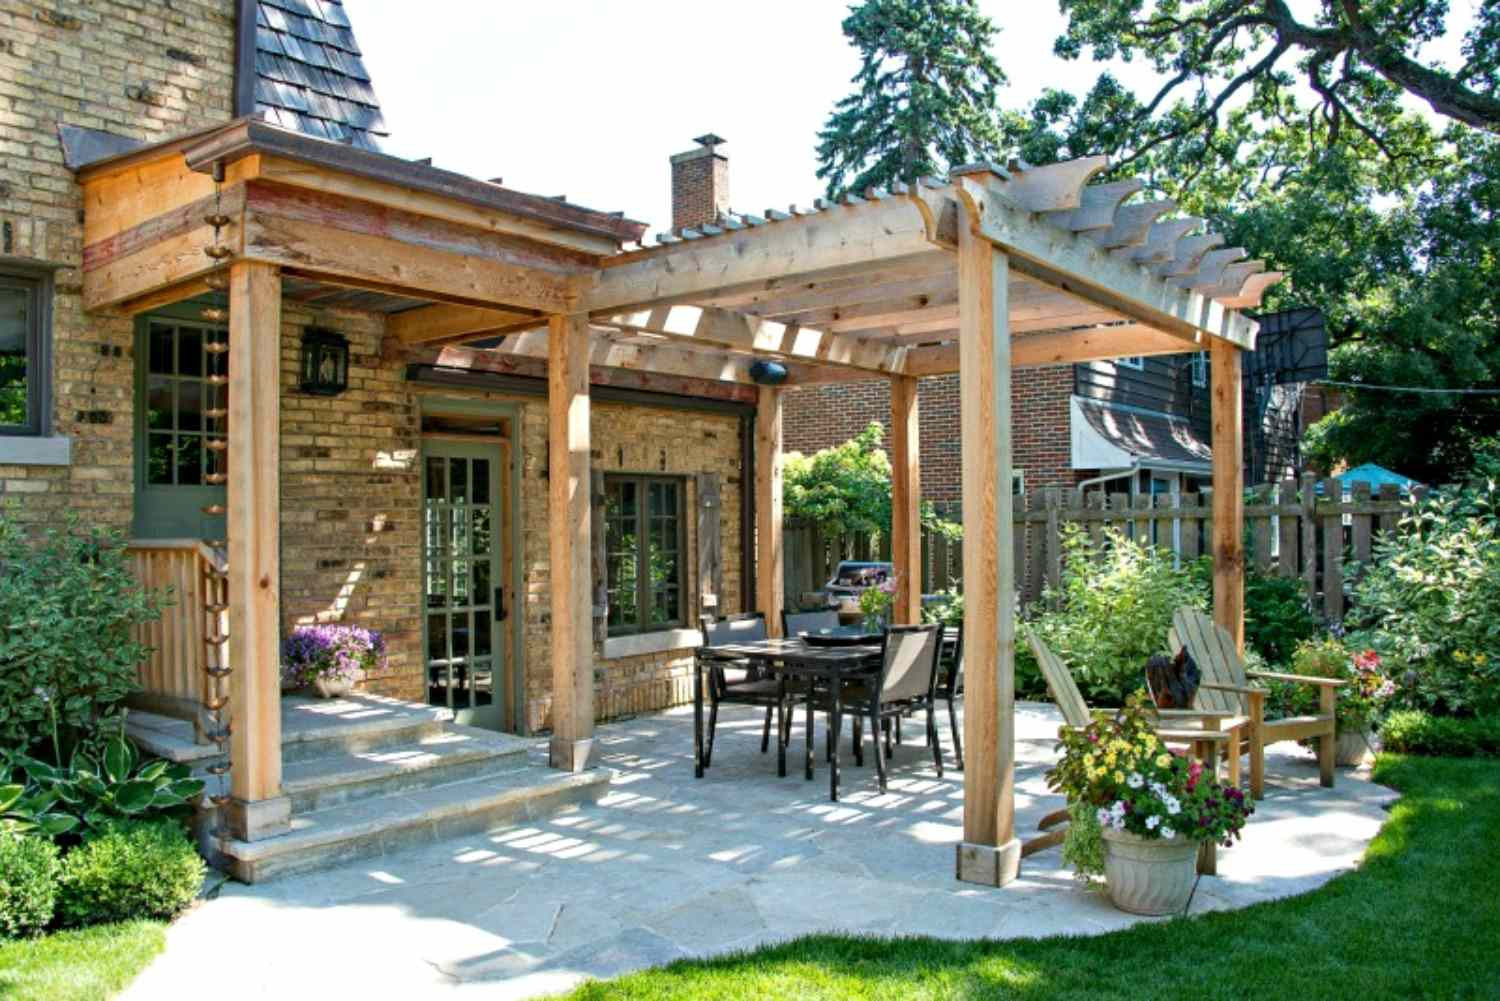 Pergola attached to brick home